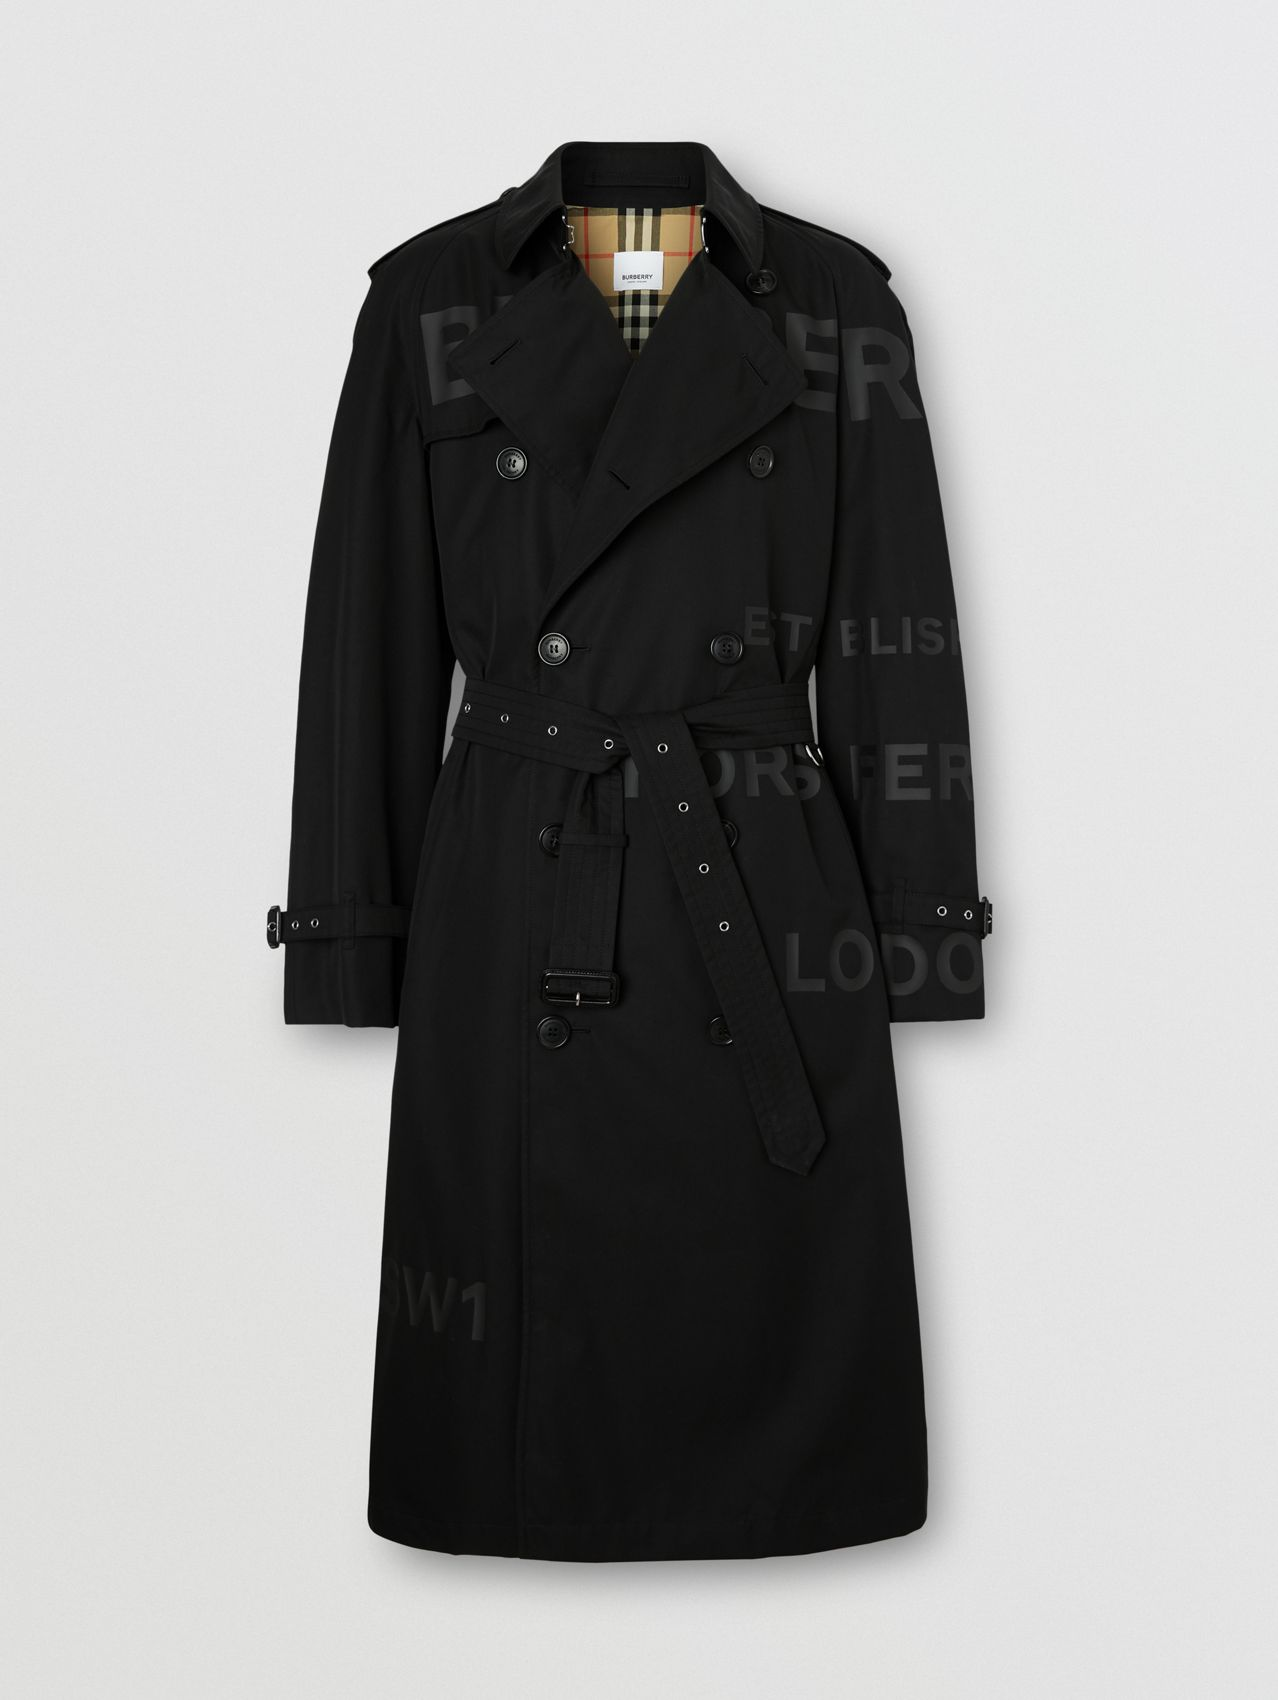 Trench coat de gabardine de algodão com estampa Horseferry in Preto